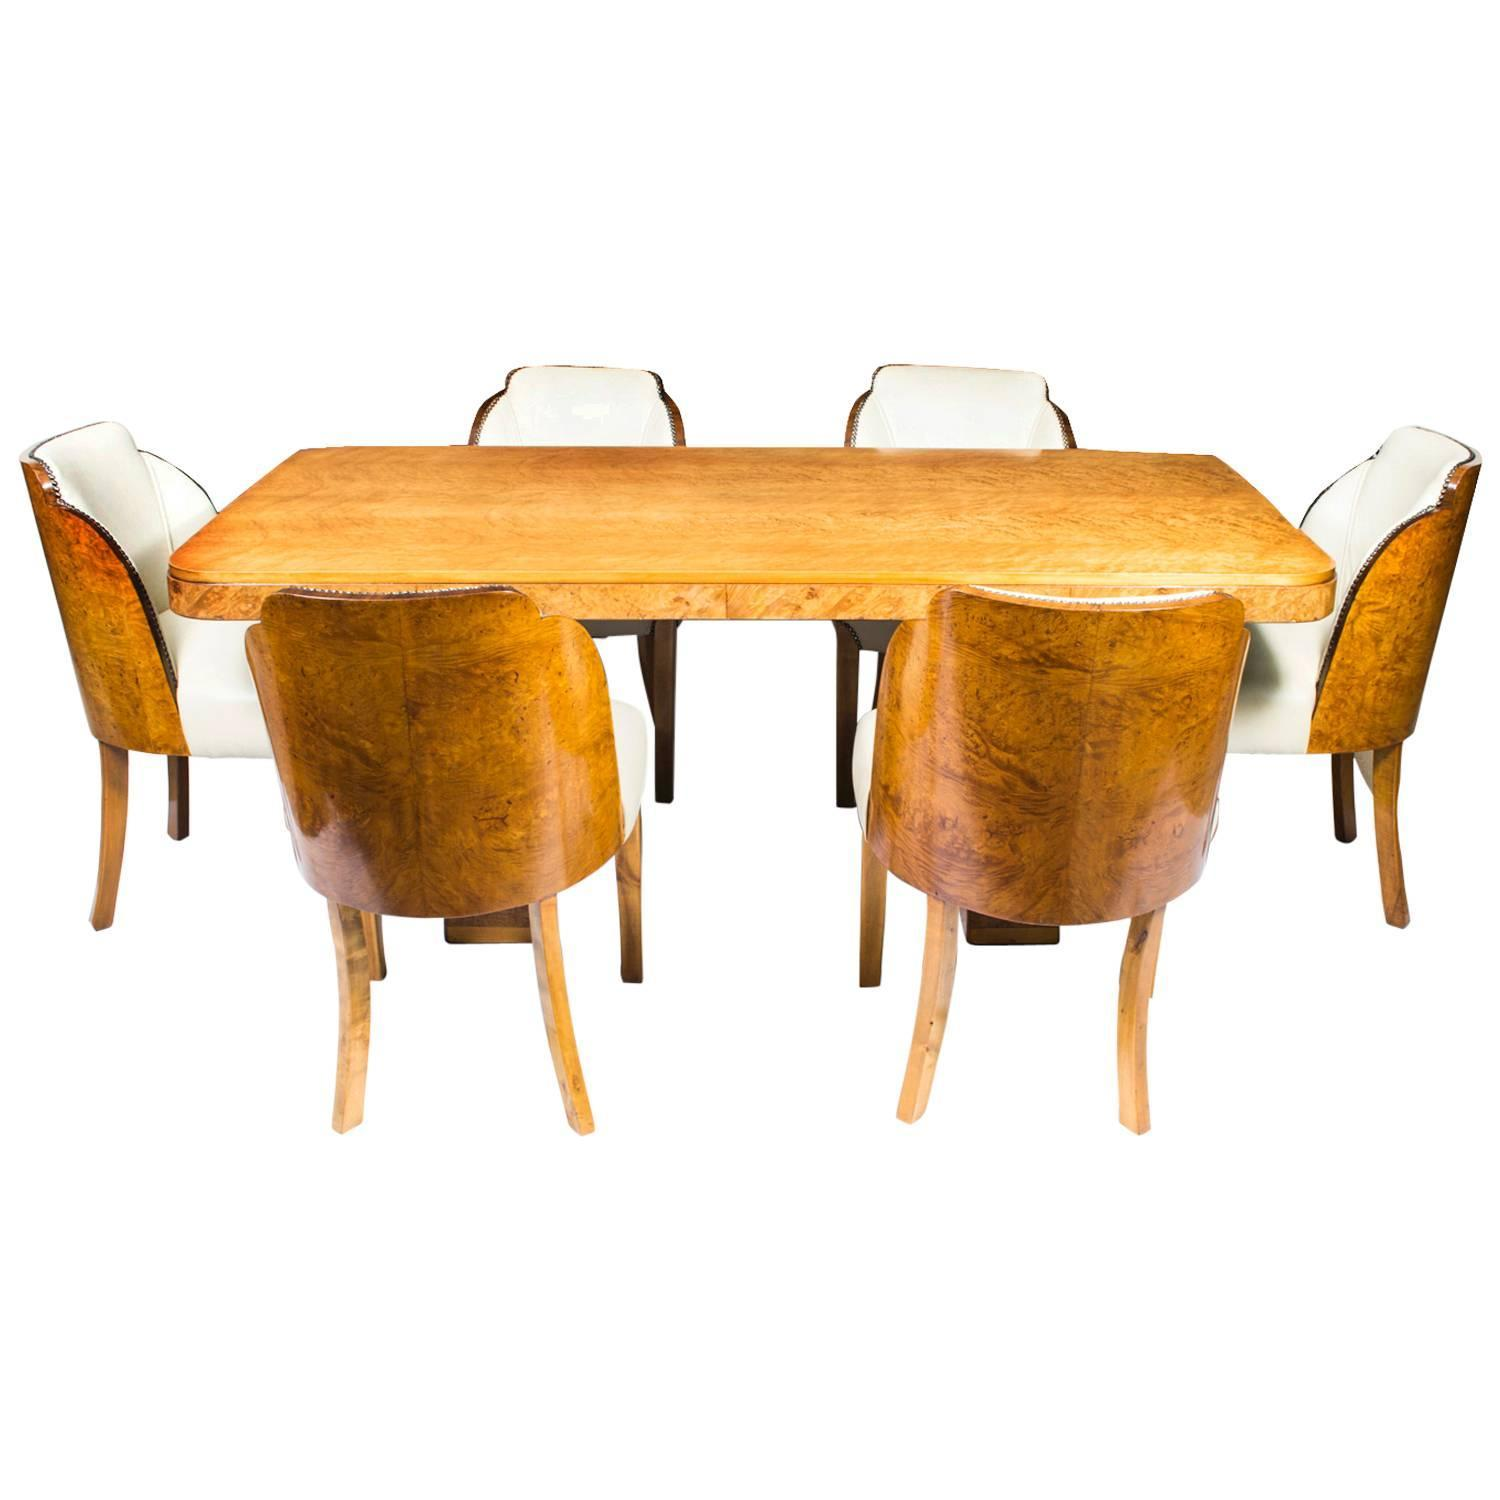 Antique Art Deco Dining Table and Six Cloudback Chairs